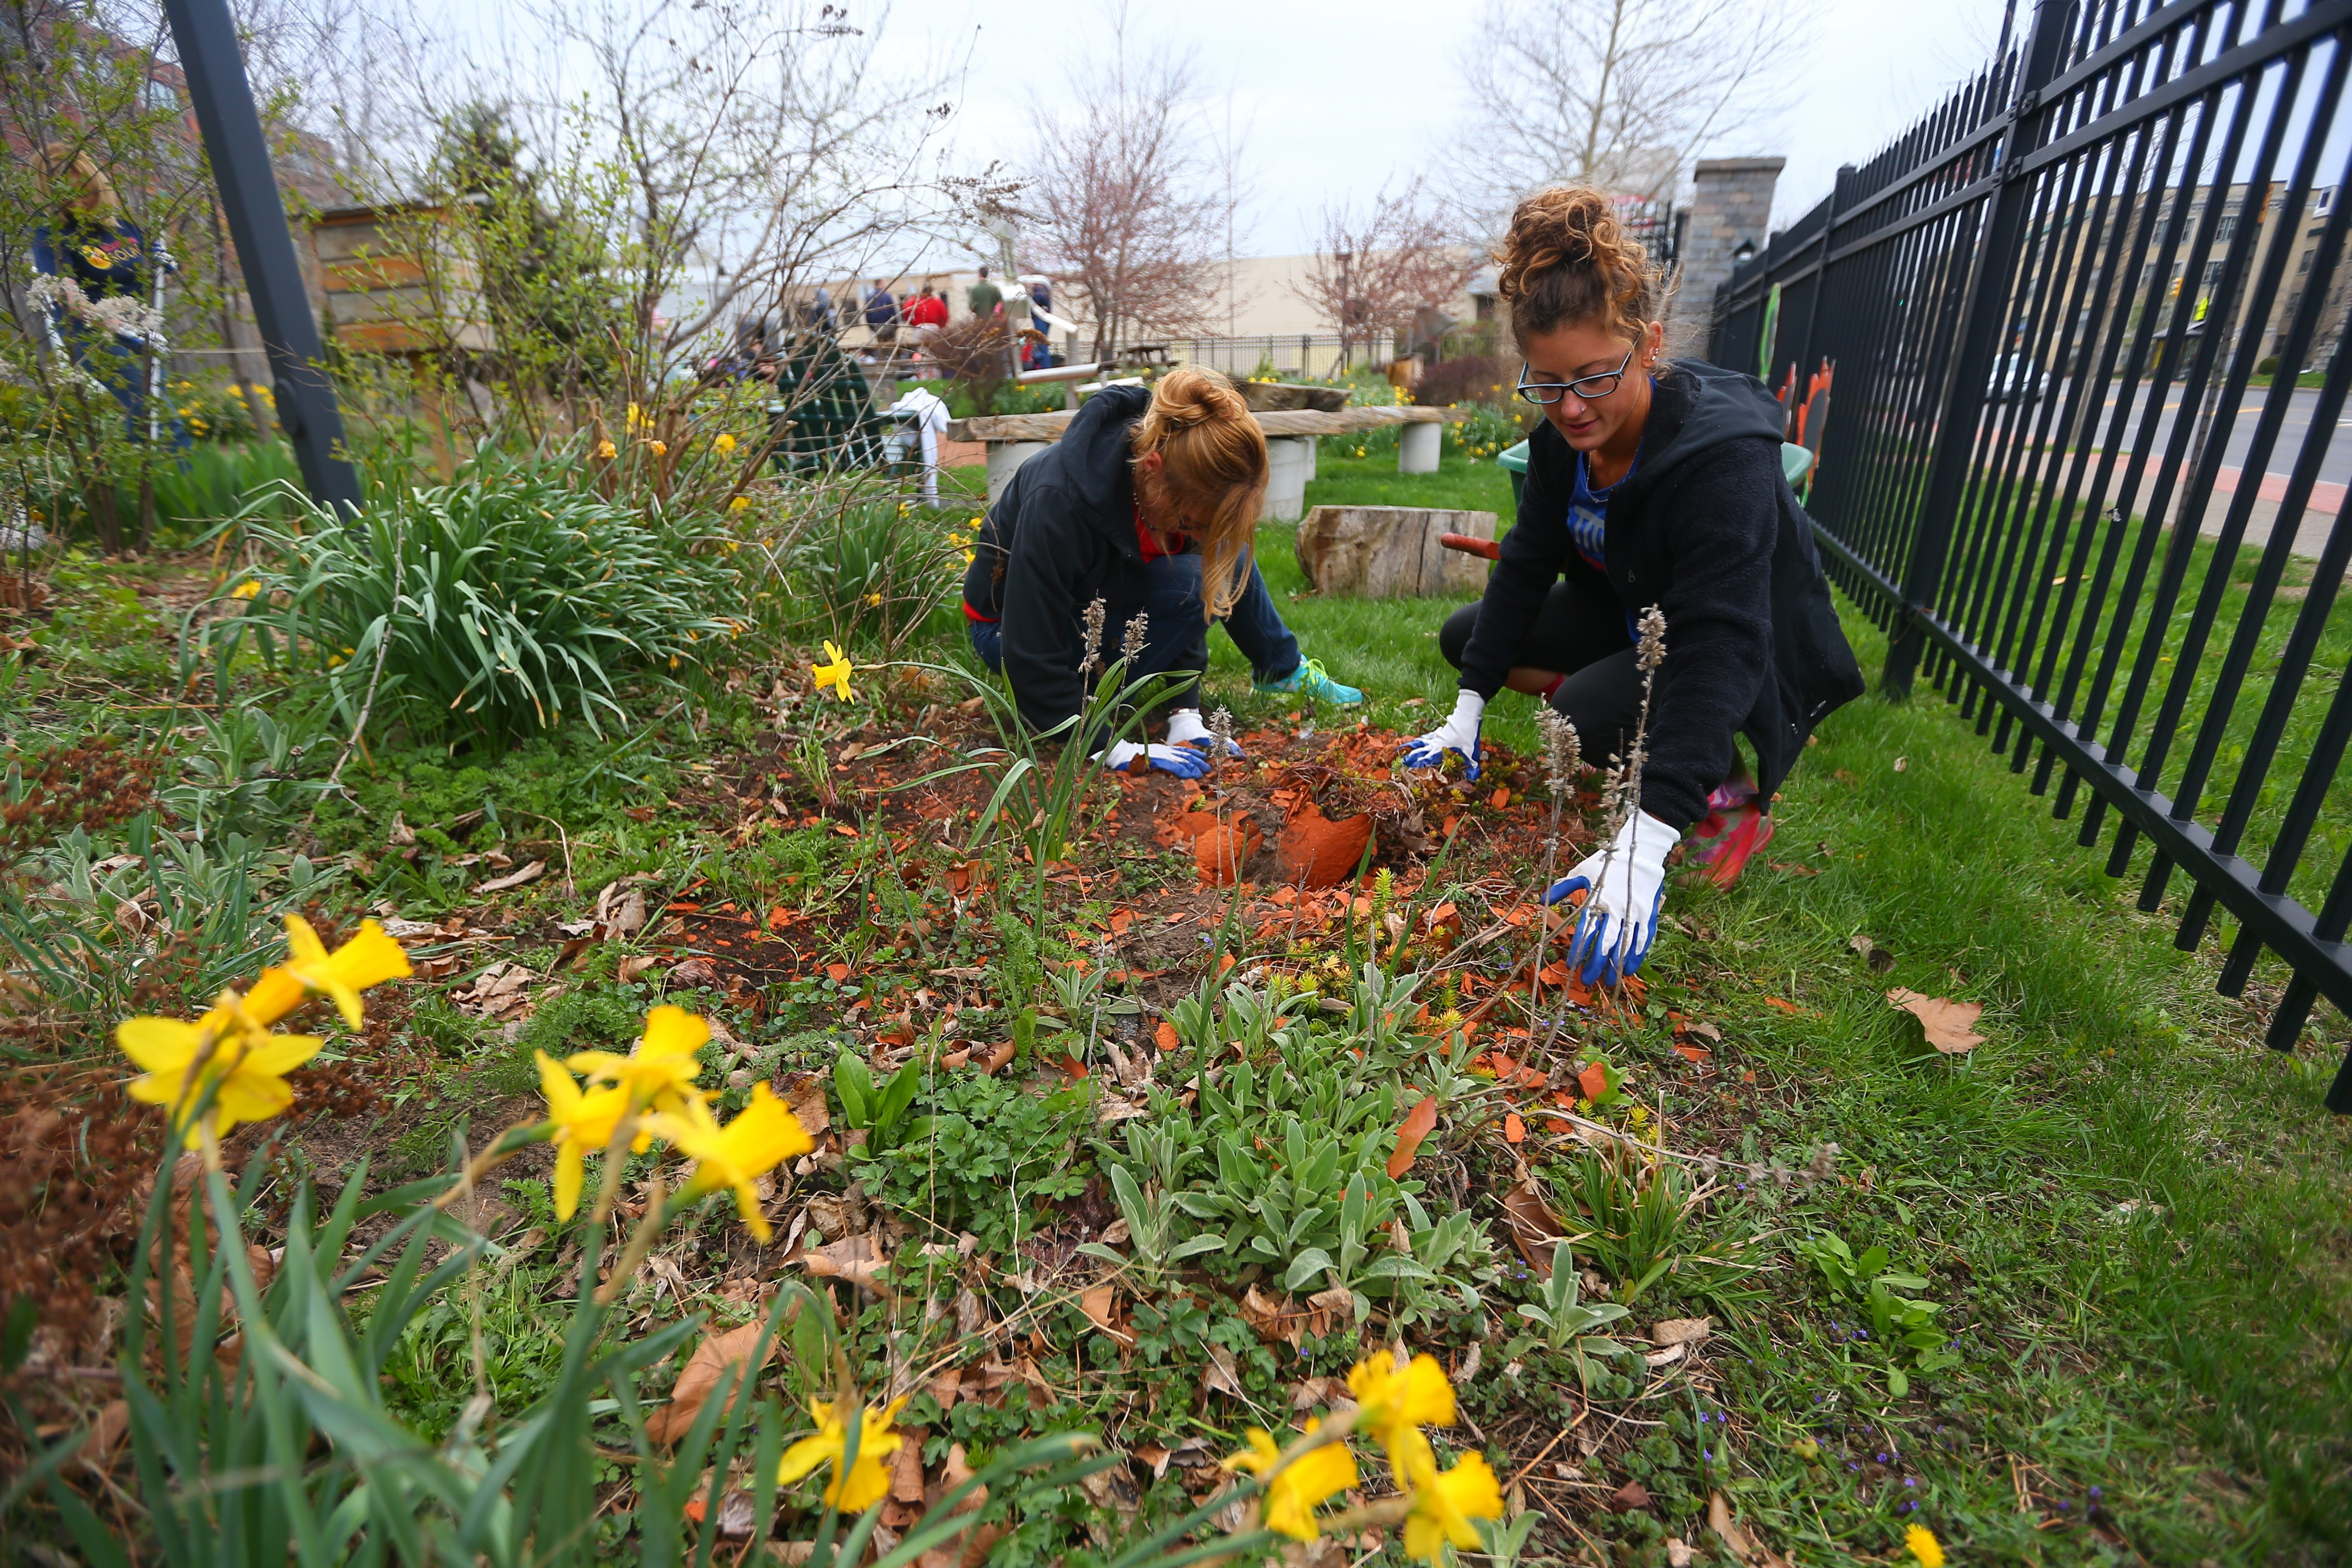 Melanie Hamilton, left, and Angela Pellett, of the Montante Group clean up and old planting and broken pottery and debris from beds, as they volunteer for Earth Day at Peoples Park in Buffalo, N.Y., on Friday April 22, 2016. (John Hickey/Buffalo News)